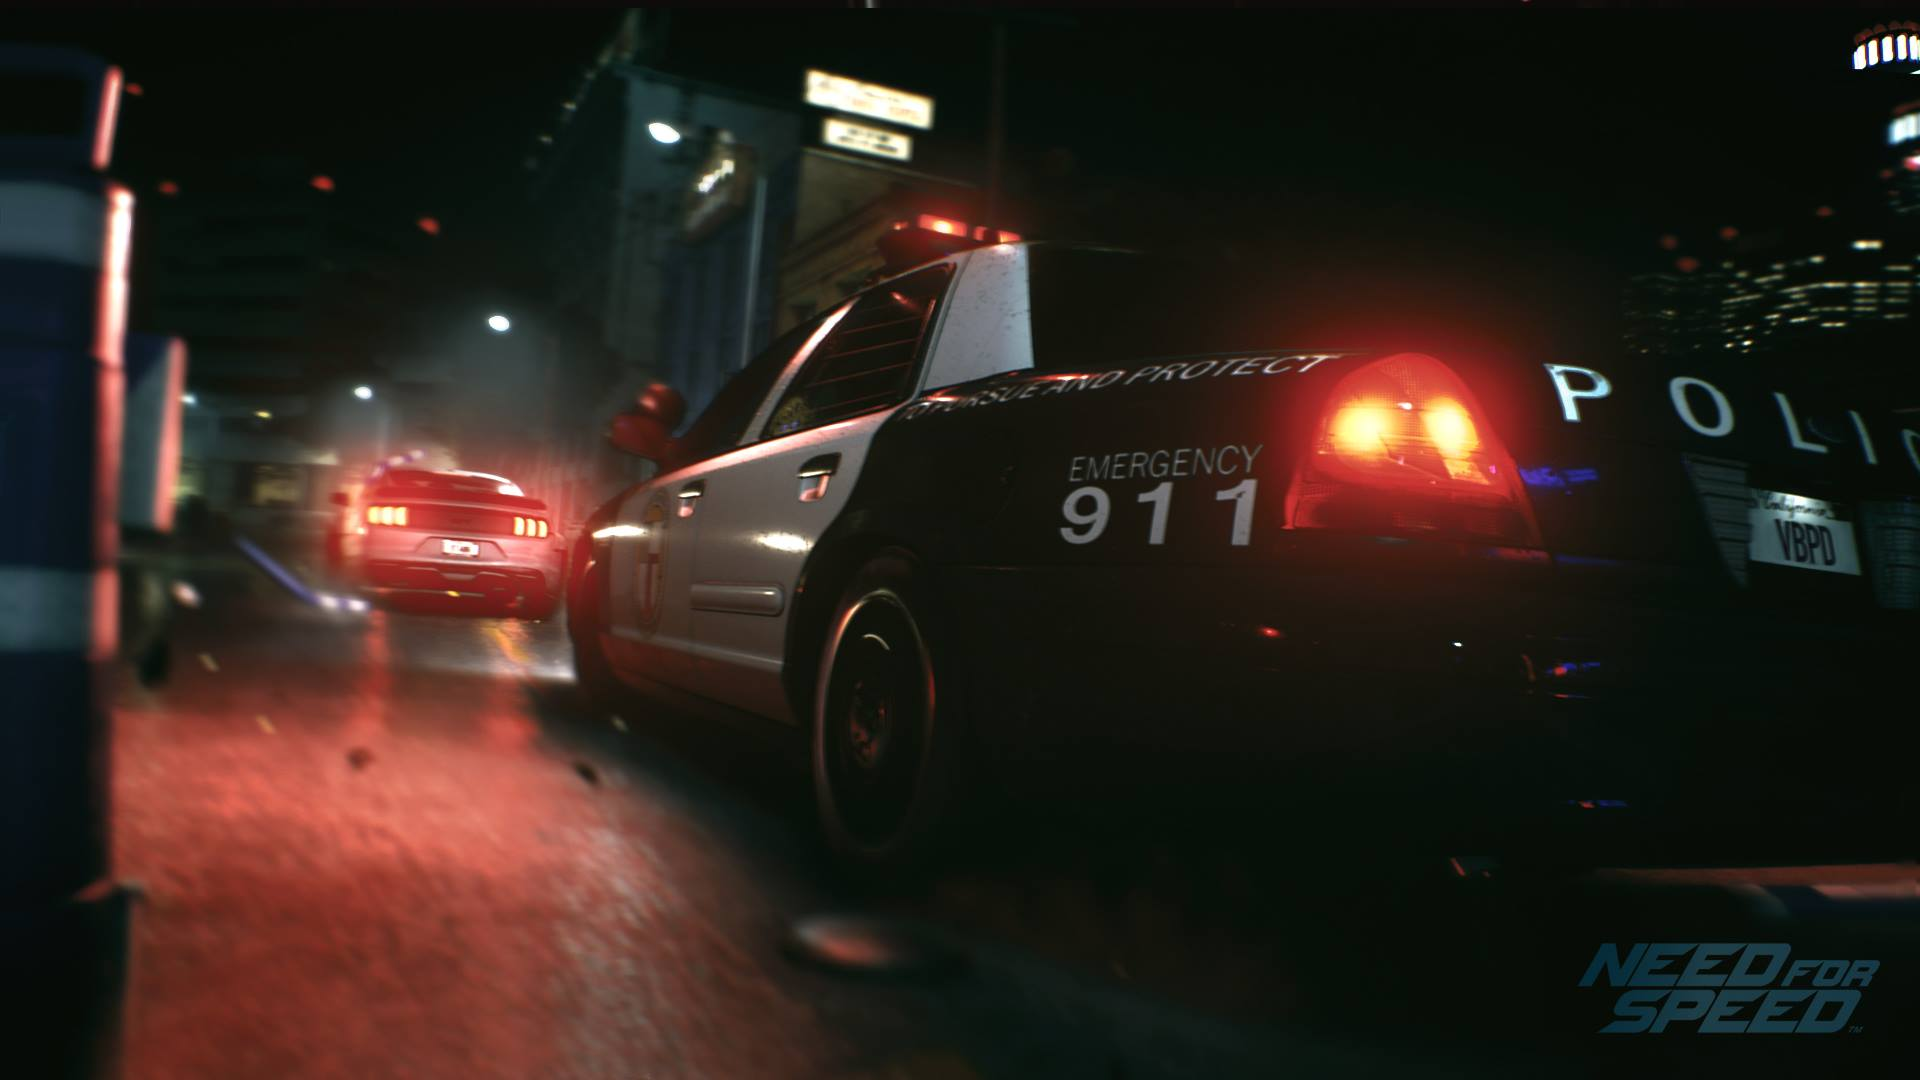 Hd Nfs Cars Wallpapers Videojuego Need For Speed 2015 Fondo De Pantalla